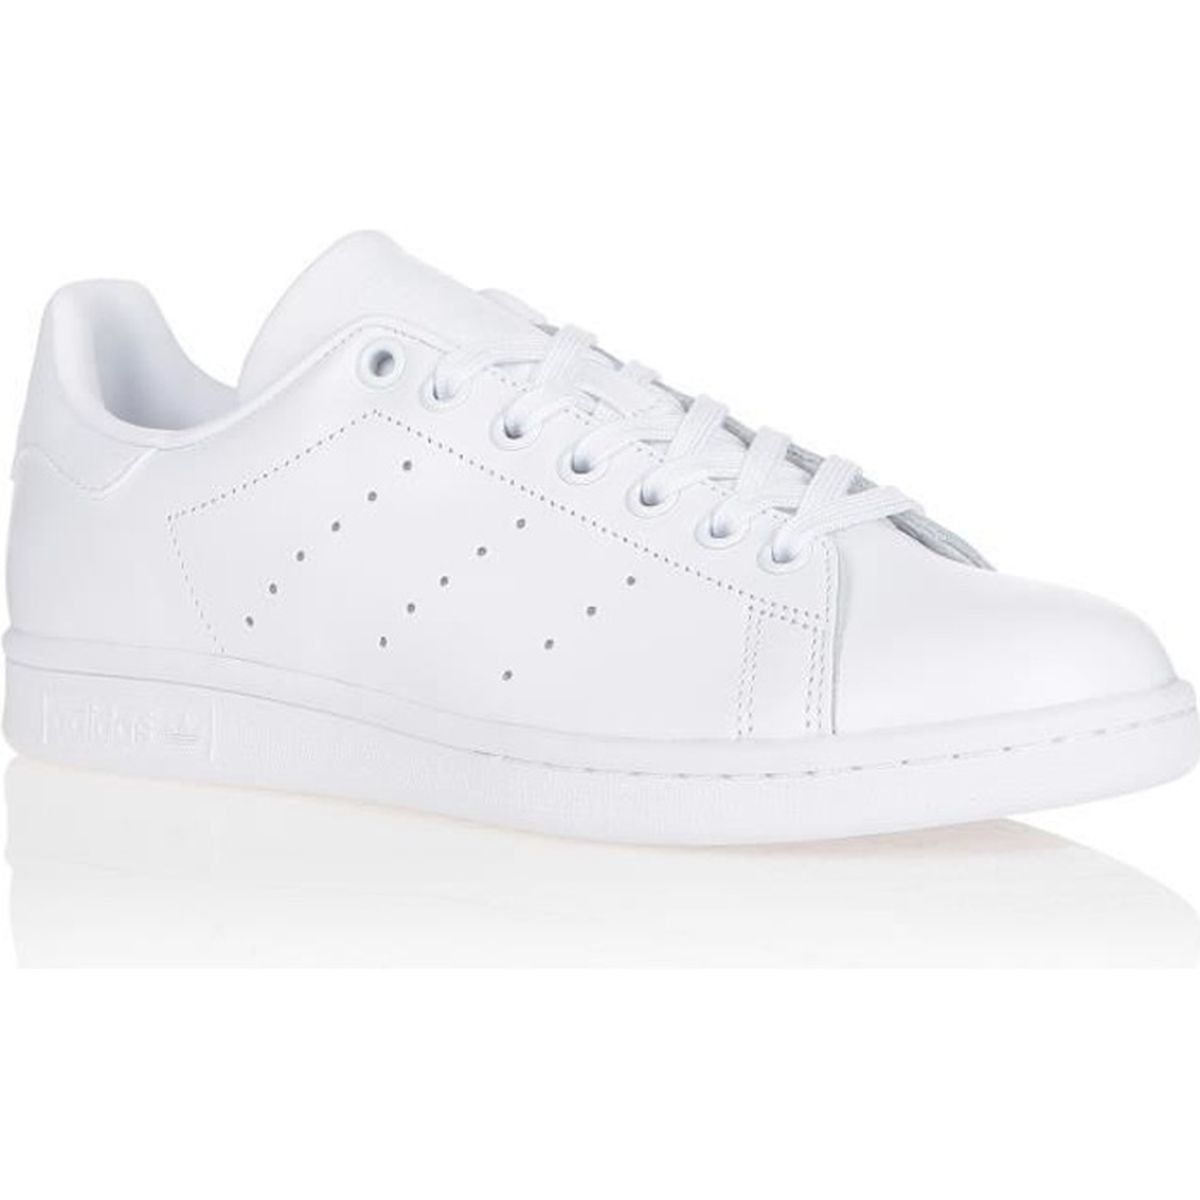 Stan Smith Bd7436 Age Adulte, Couleur Blanc, Genre Homme, Taille 43 13